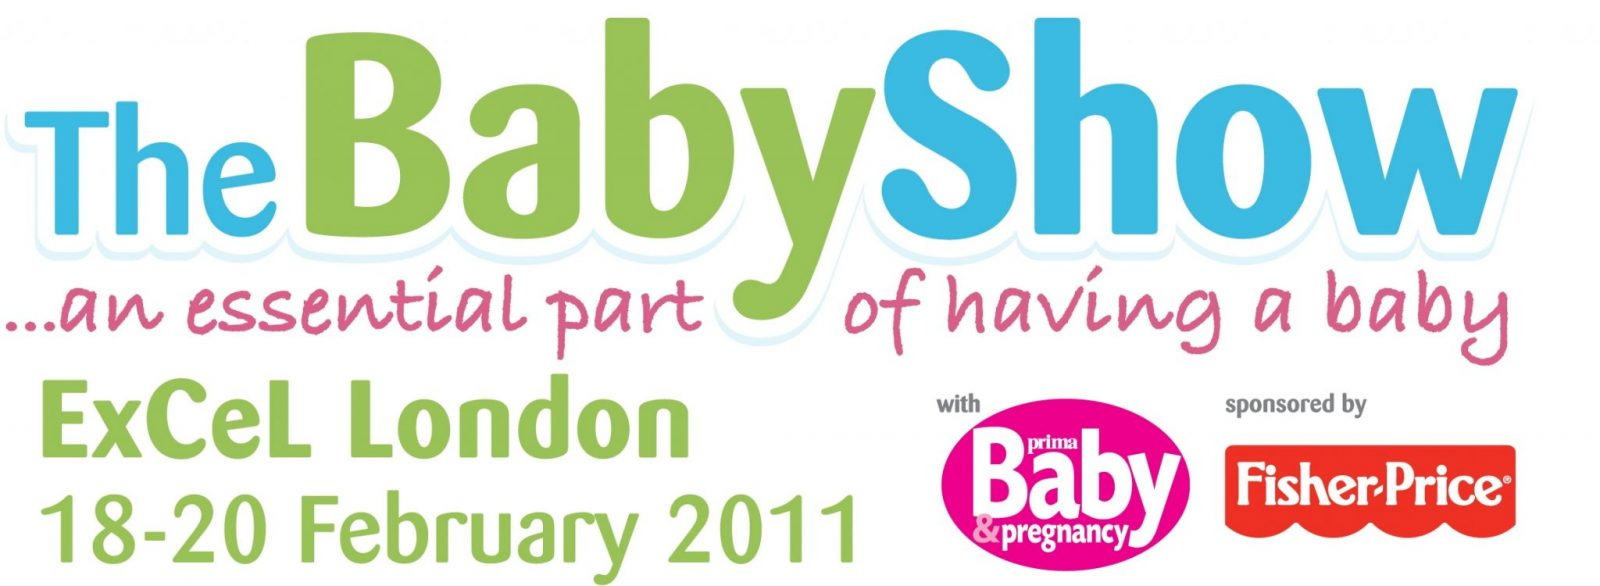 Win one of 5 pairs of tickets to the Baby Show at London's Excel